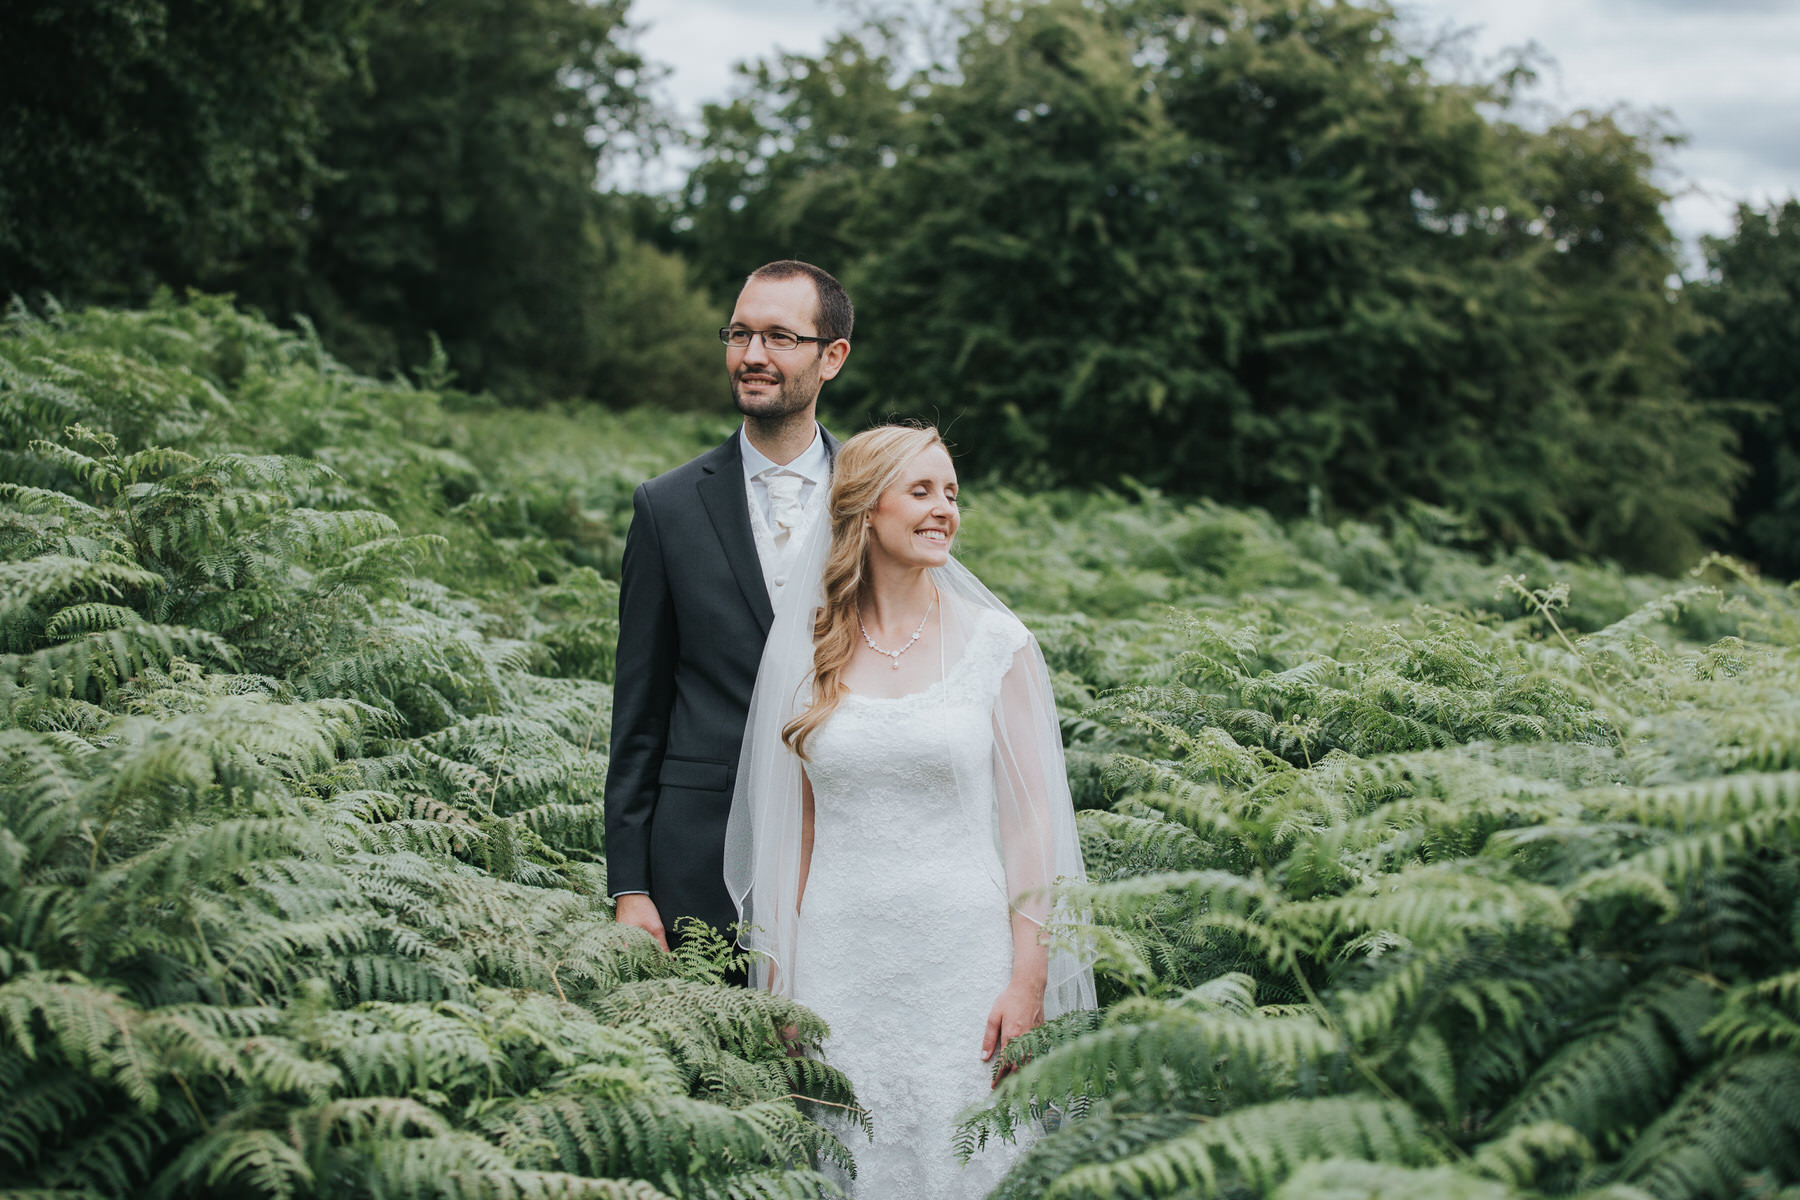 LAURA & ALEX - It was a pleasure having you as our photographer, you're very talented and so professional, it's been so nice to work with you. The engagement photos are gorgeous too – two sets of wonderful pictures to enjoy.